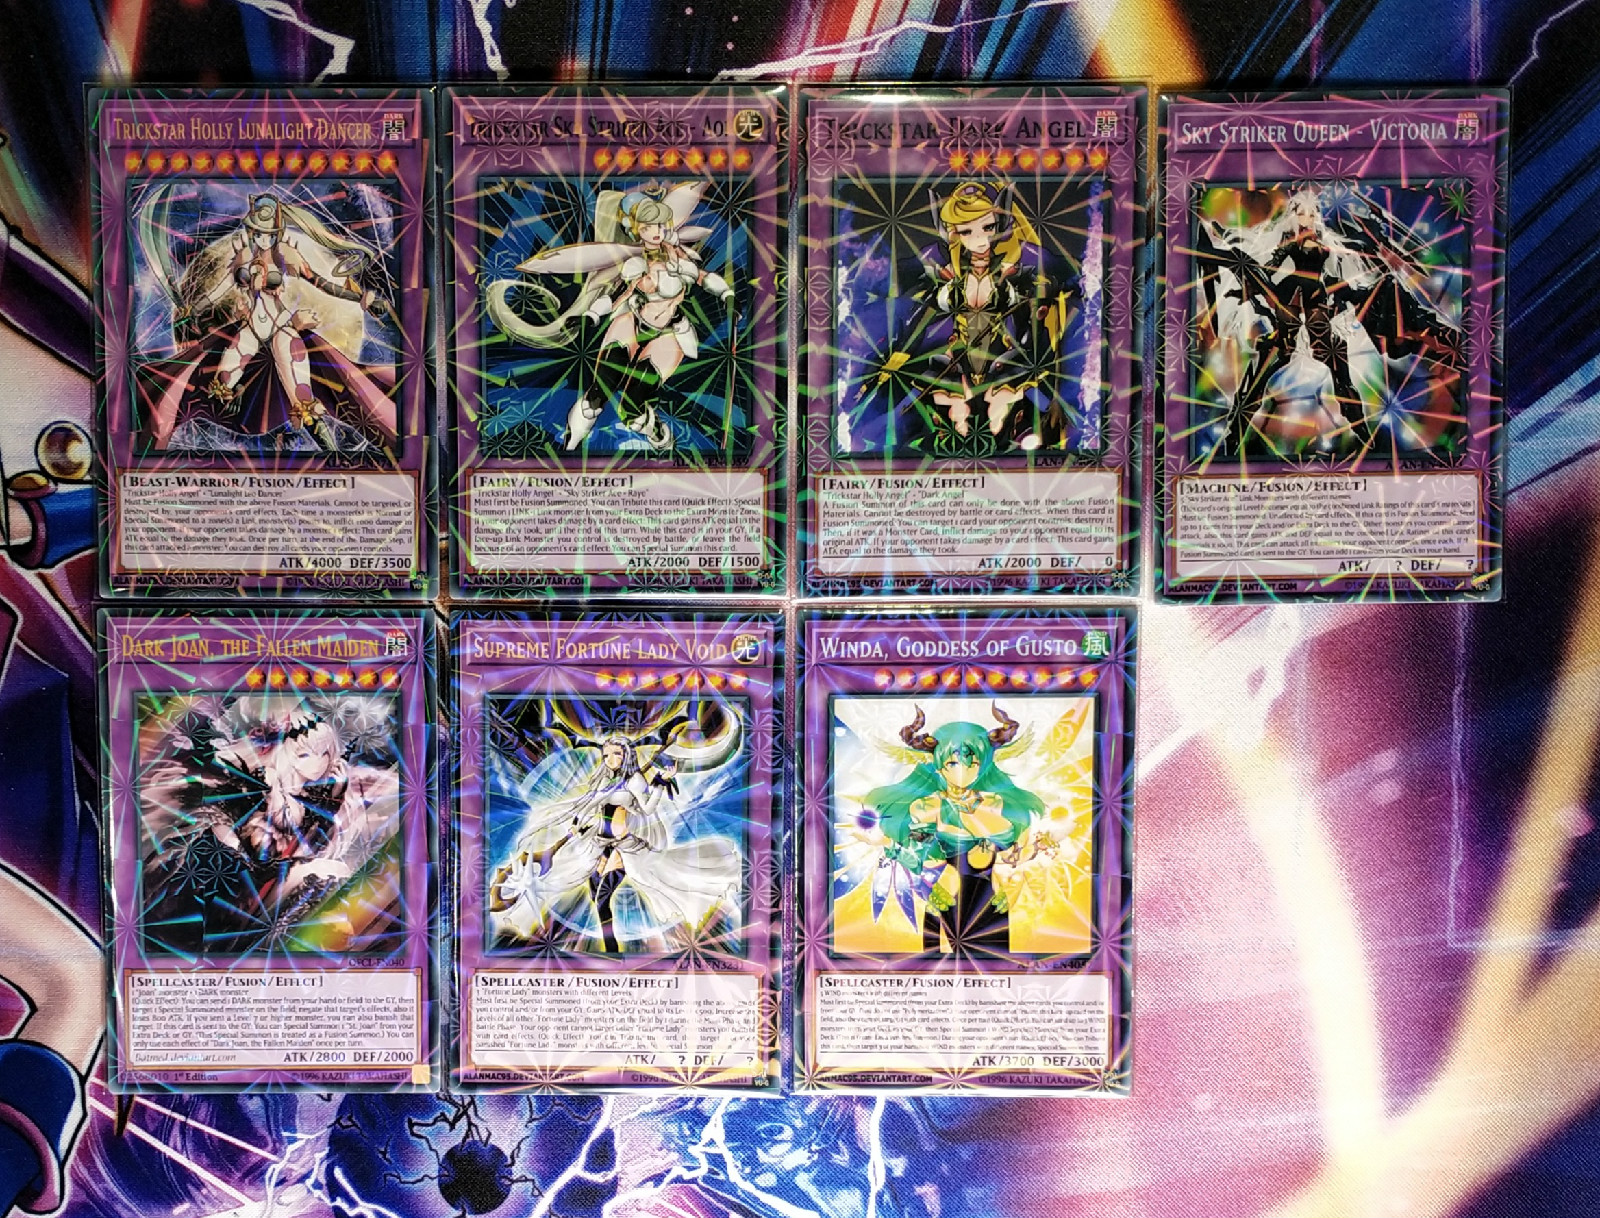 7pcs/set Yu Gi Oh DIY Colorful Toys Hobbies Hobby Collectibles Game Collection Anime Cards